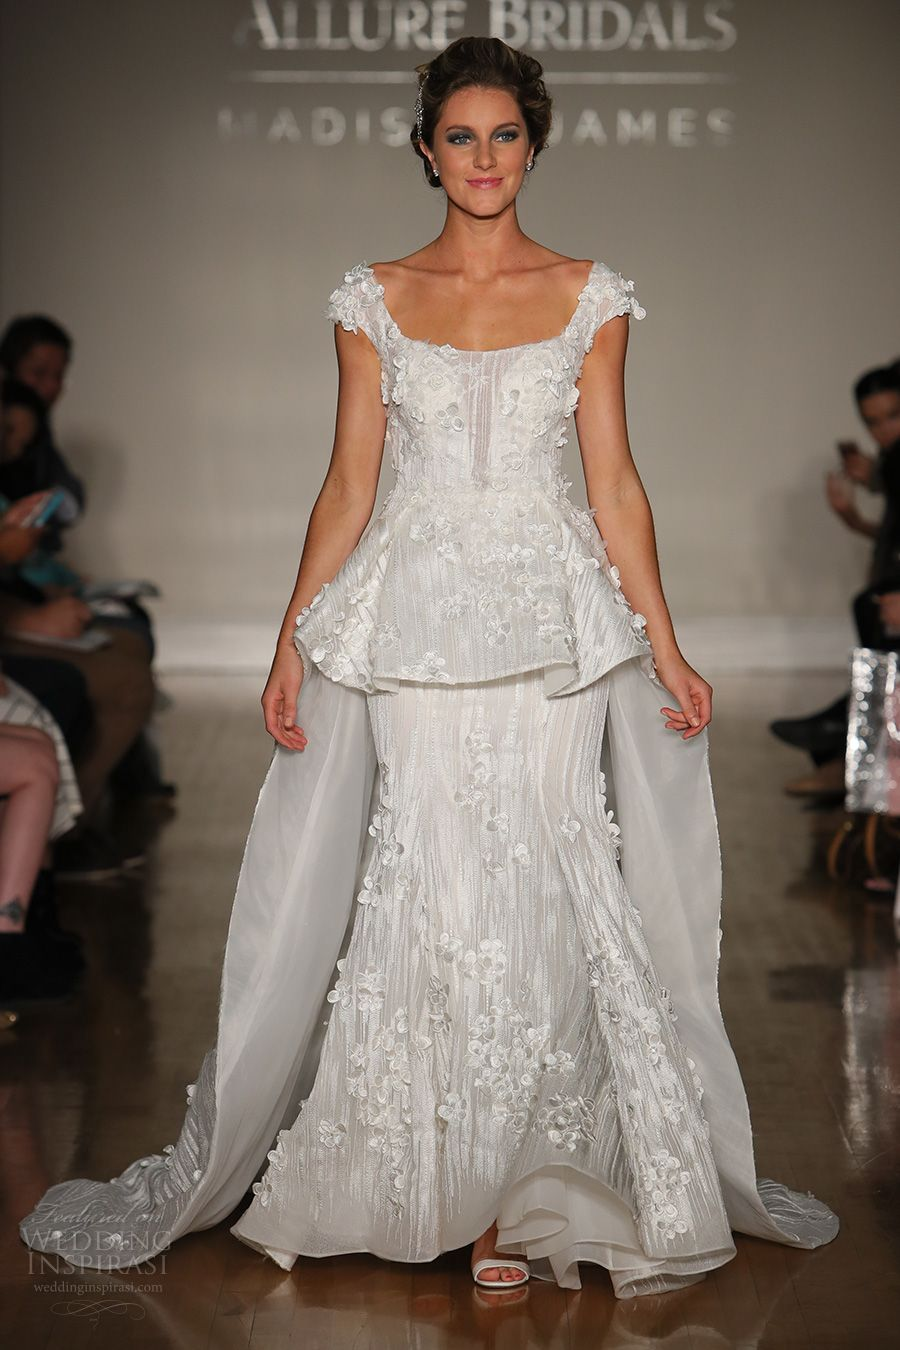 Allure bridals and madison james collections u new york bridal